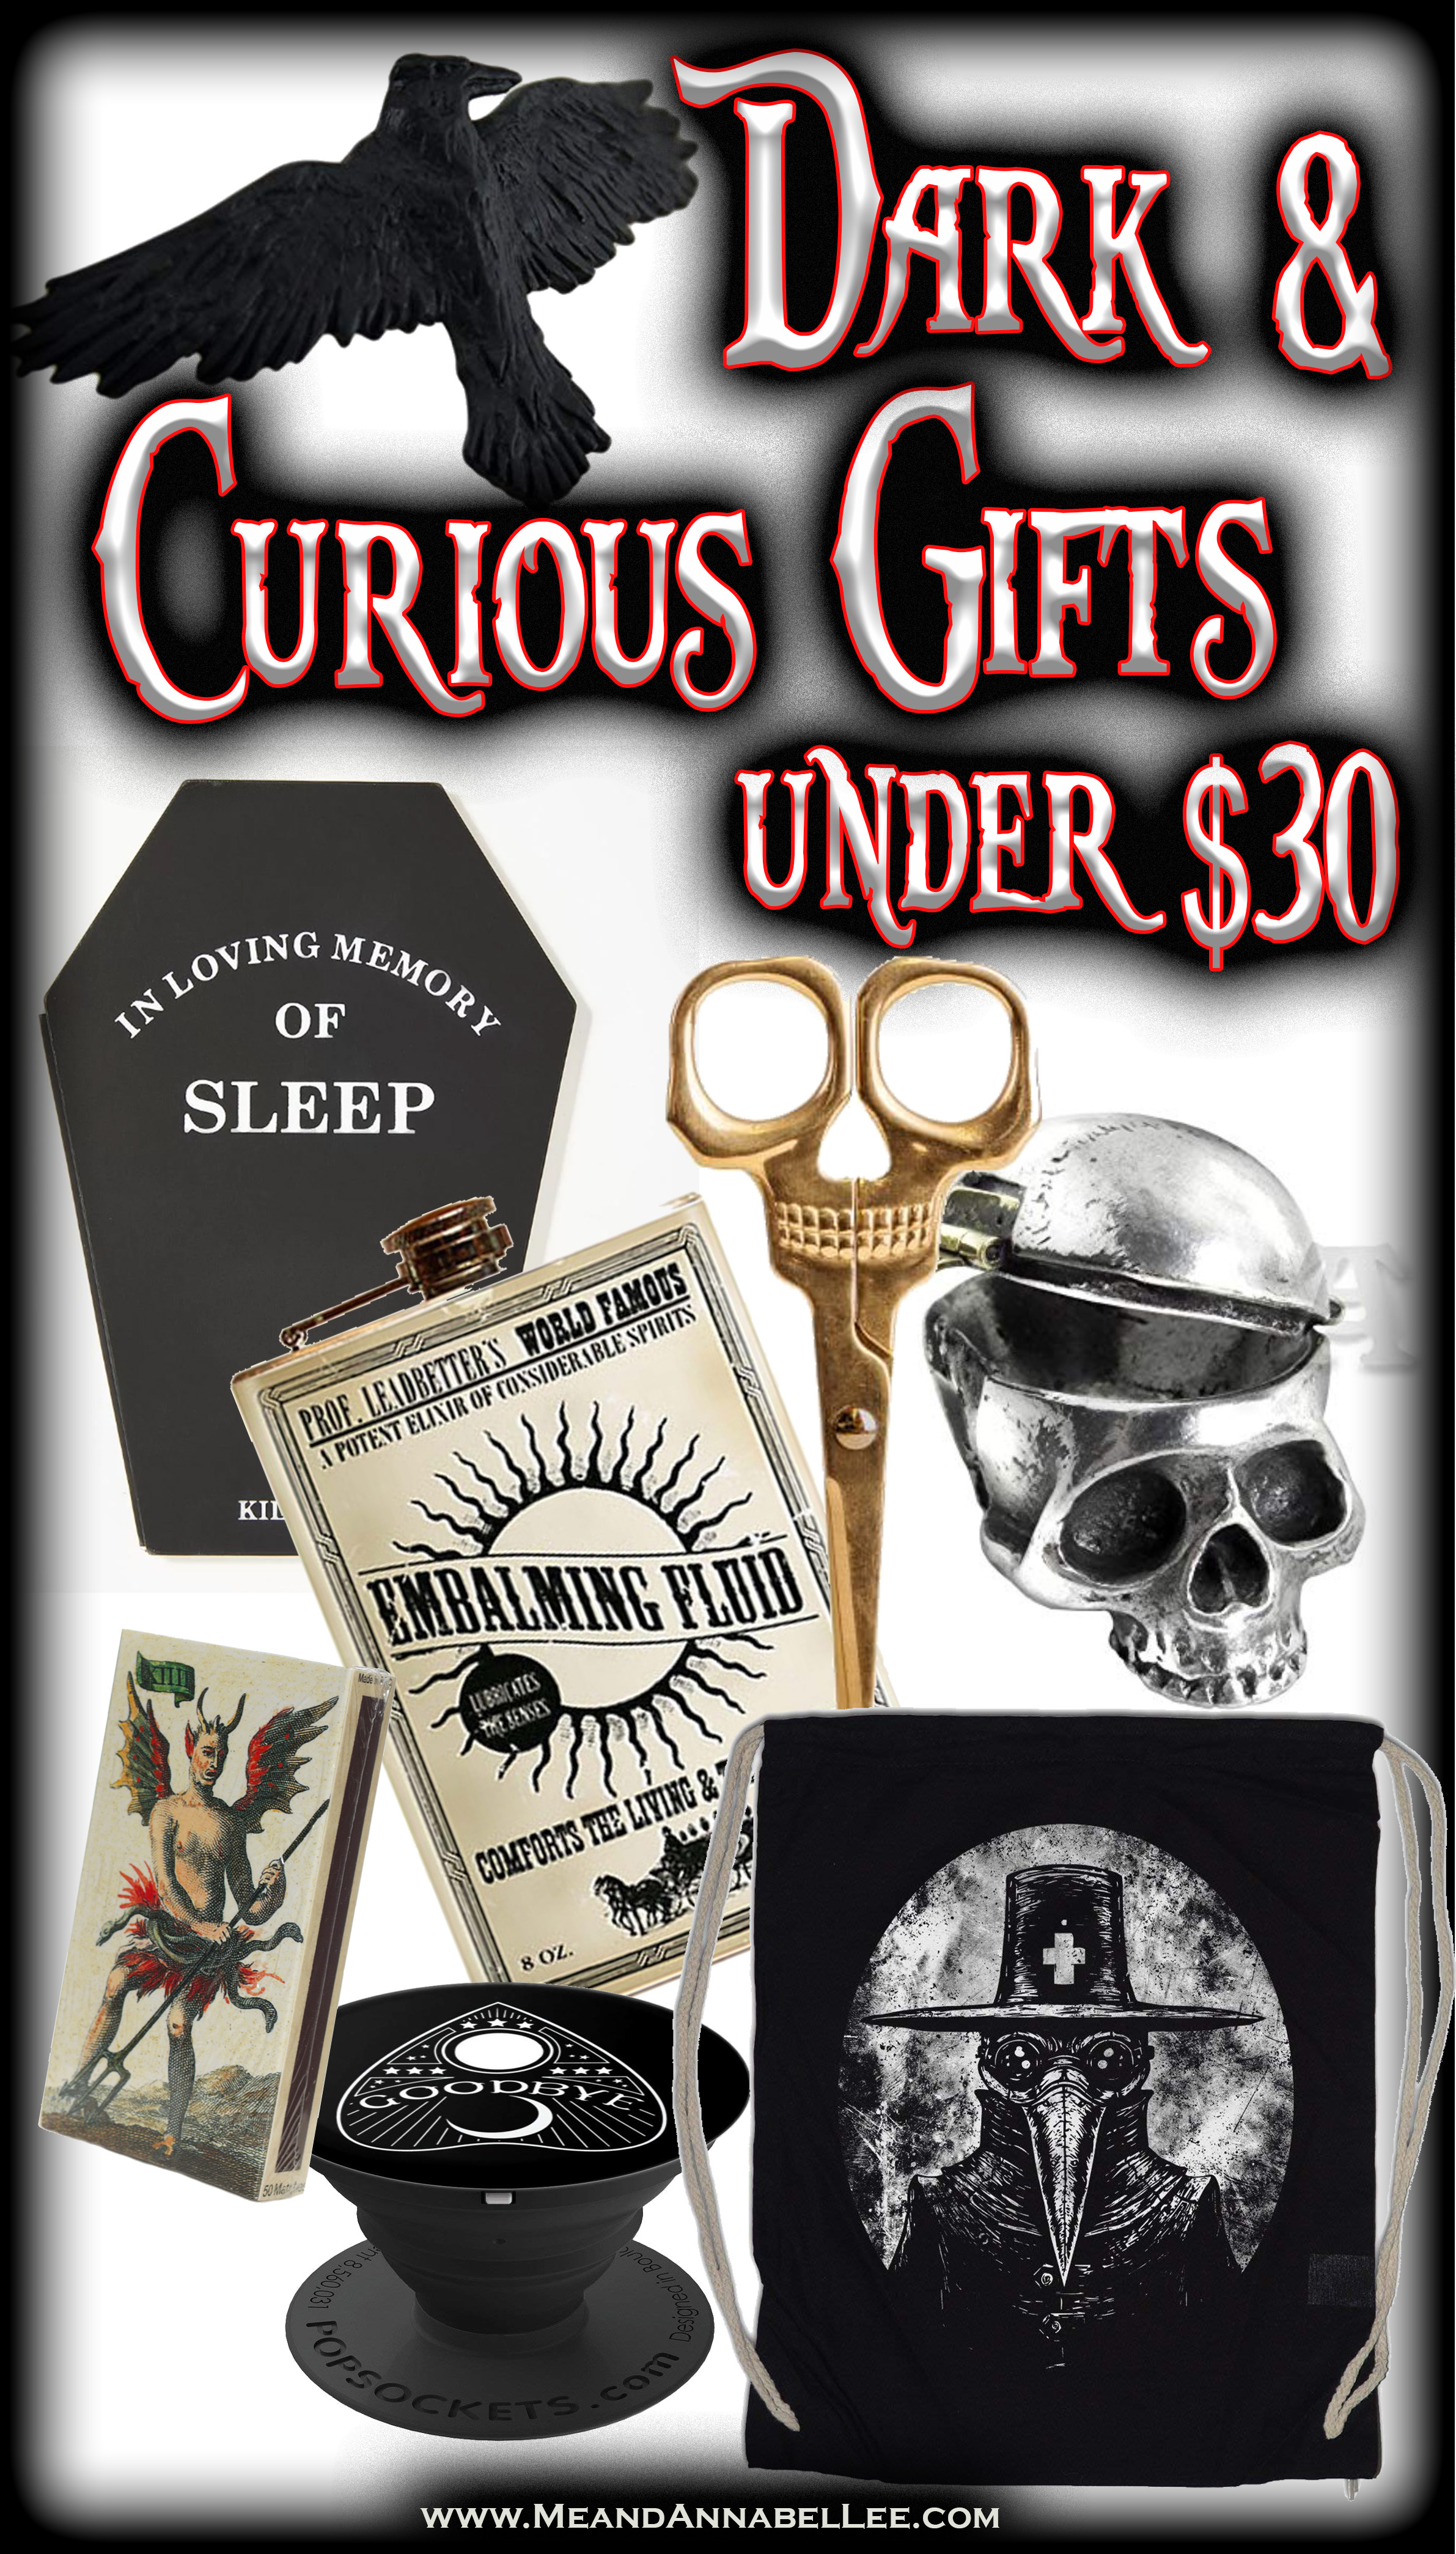 Macabre, Curious, & Gothic Gift Ideas Under $30 | Me and Annabel Lee